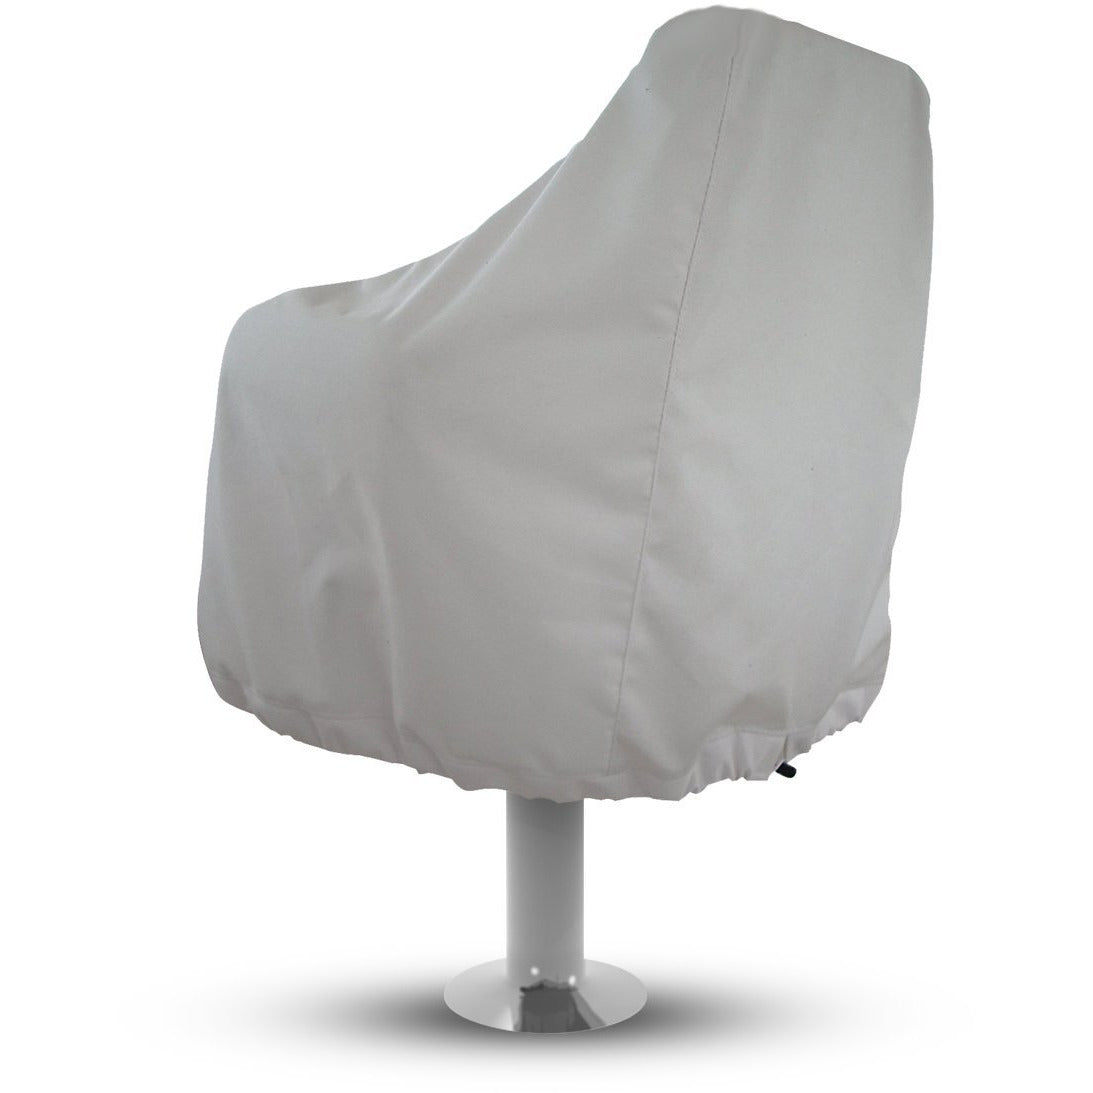 Boat Bench Chair Seat Cover Boat Seat Cover Heavy Duty Oxford Fabric Captains Chair Cover Weather Resistant 420D Waterproof Full Length Protection for Your Helm Chair Protective Cover (Blue)